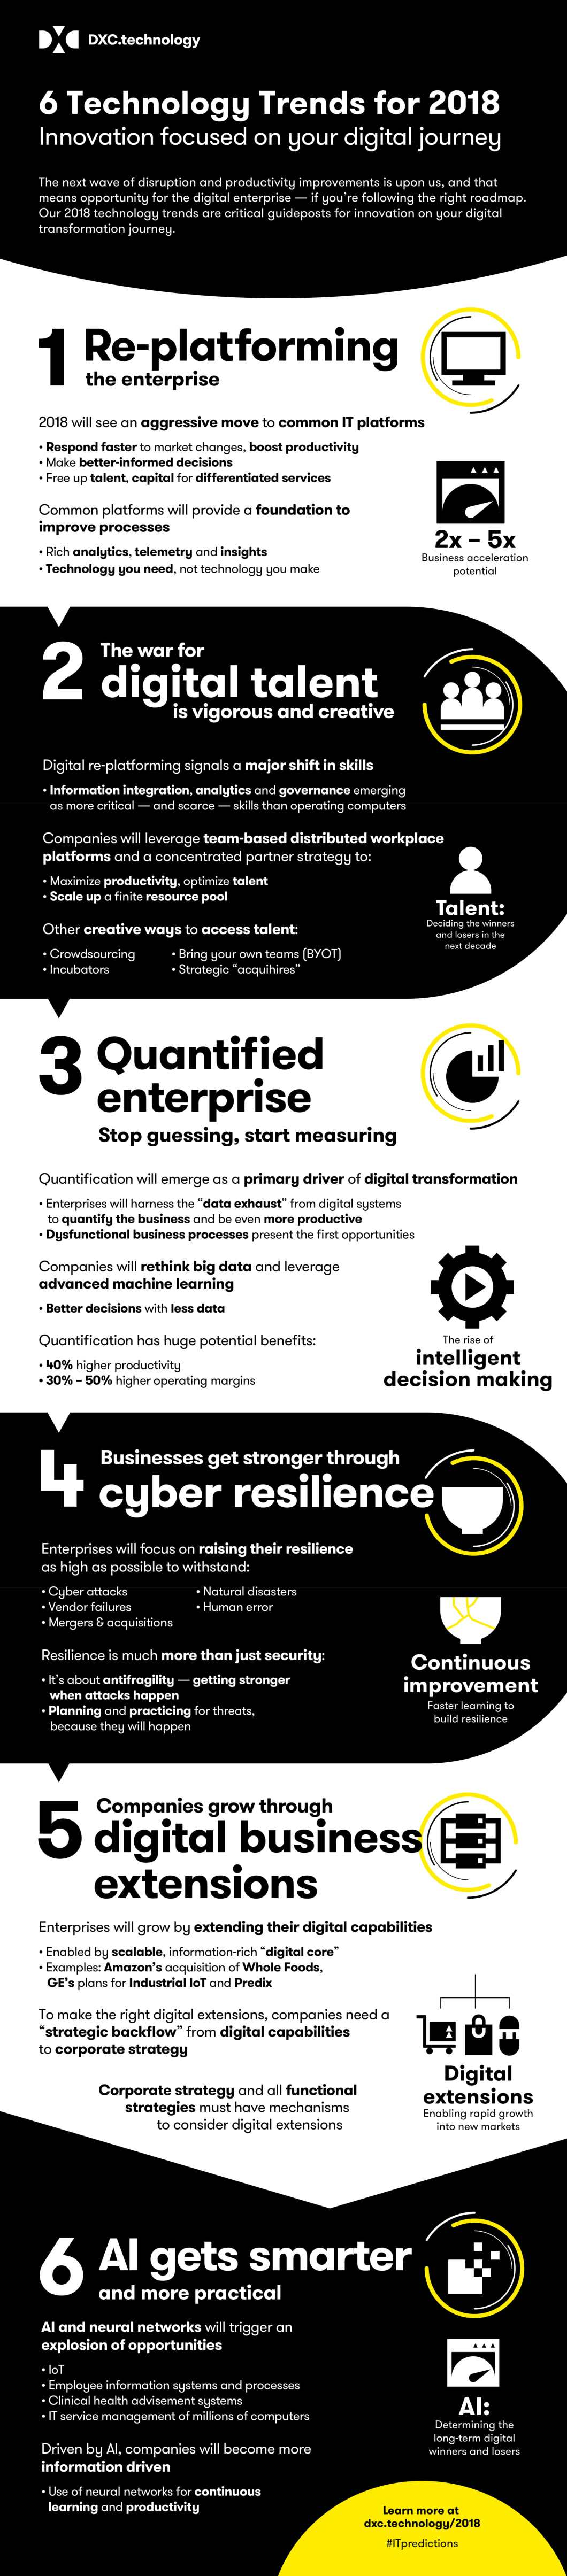 Digital Transformation & Technology Trends: 2018 - Infographic